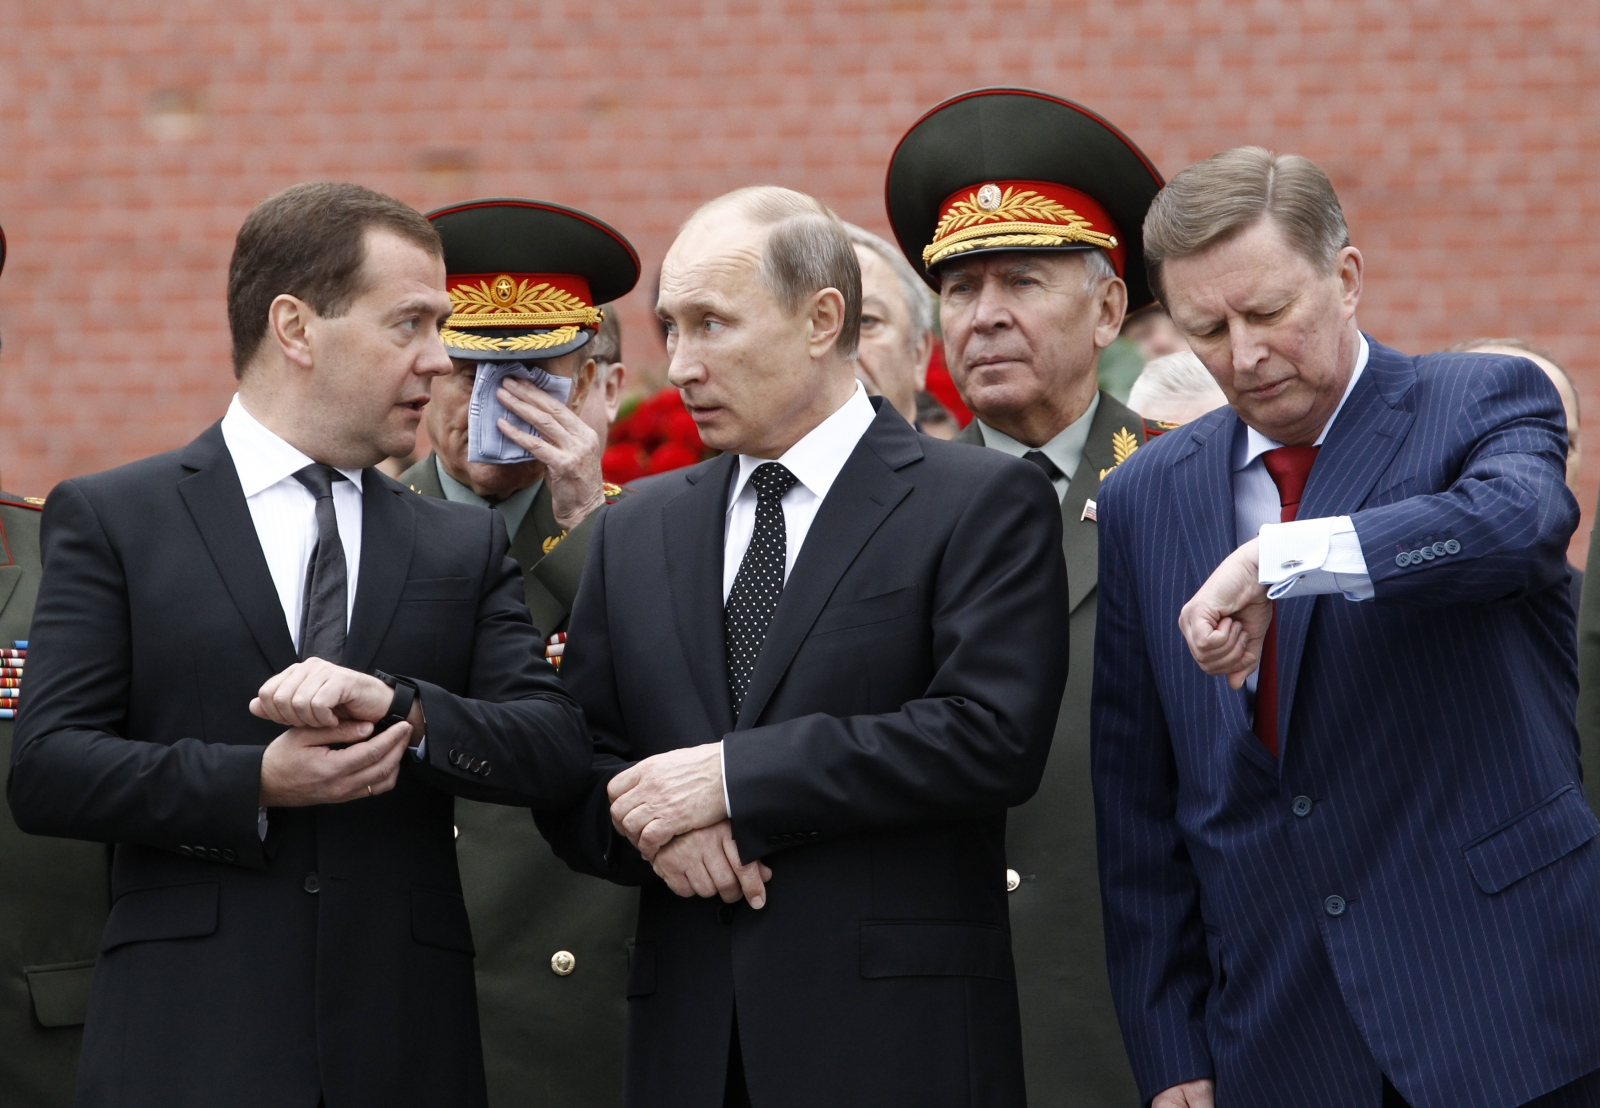 Russia\'s President Vladimir Putin (C), Prime Minister Dmitry Medvedev (L, front) and Chief of Staff of the Presidential Administration Sergei Ivanov (R, front)